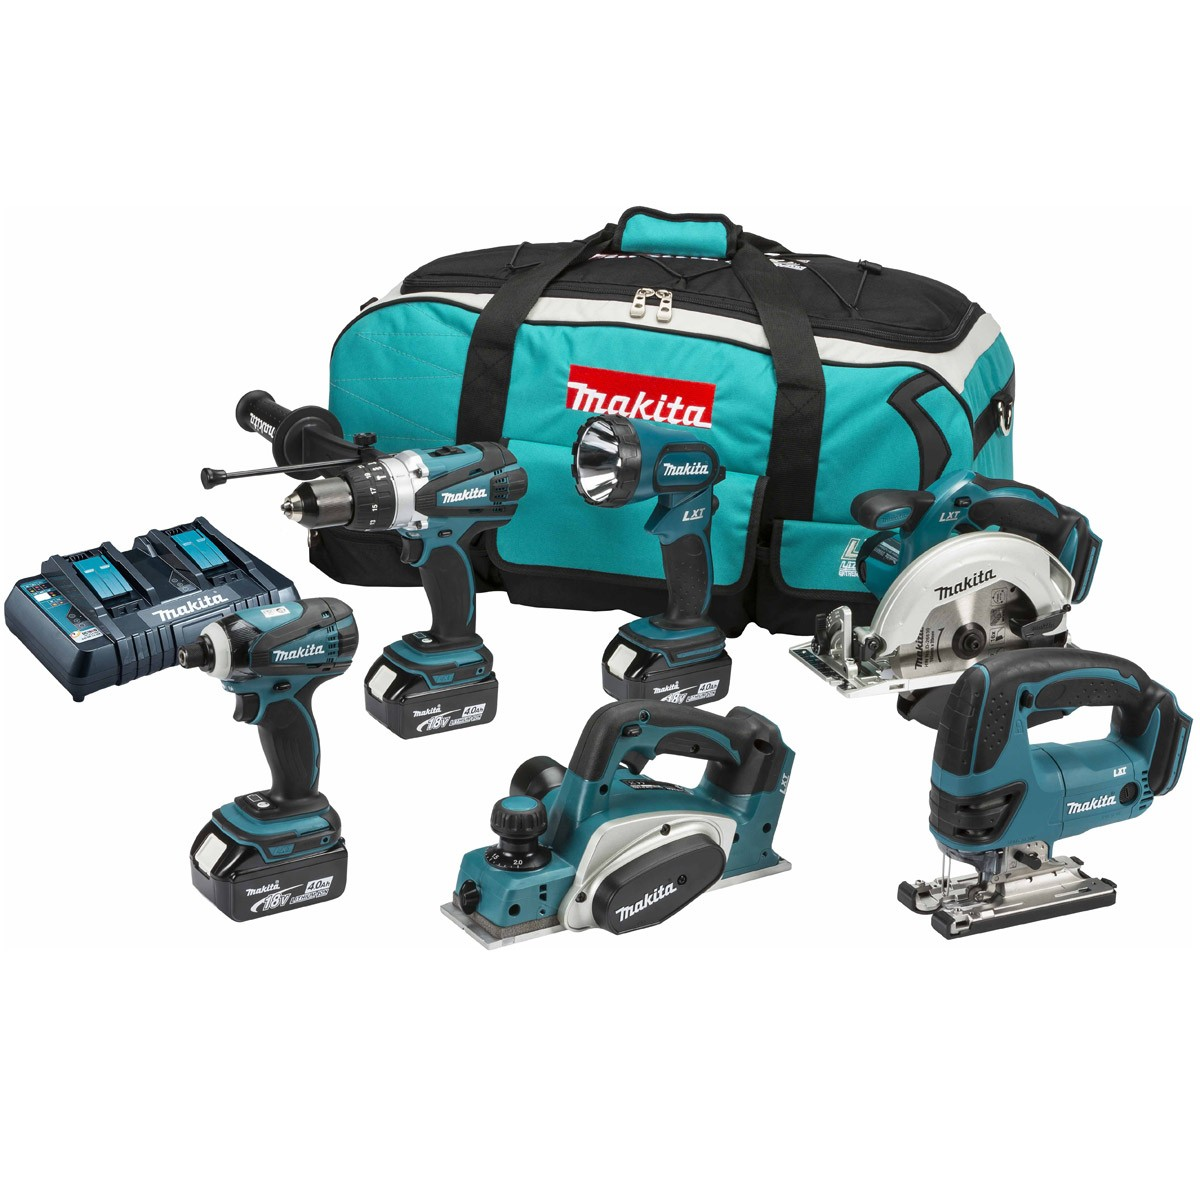 makita dlx6012pm 18v 6 piece kit inc 3x 4ah batts with. Black Bedroom Furniture Sets. Home Design Ideas